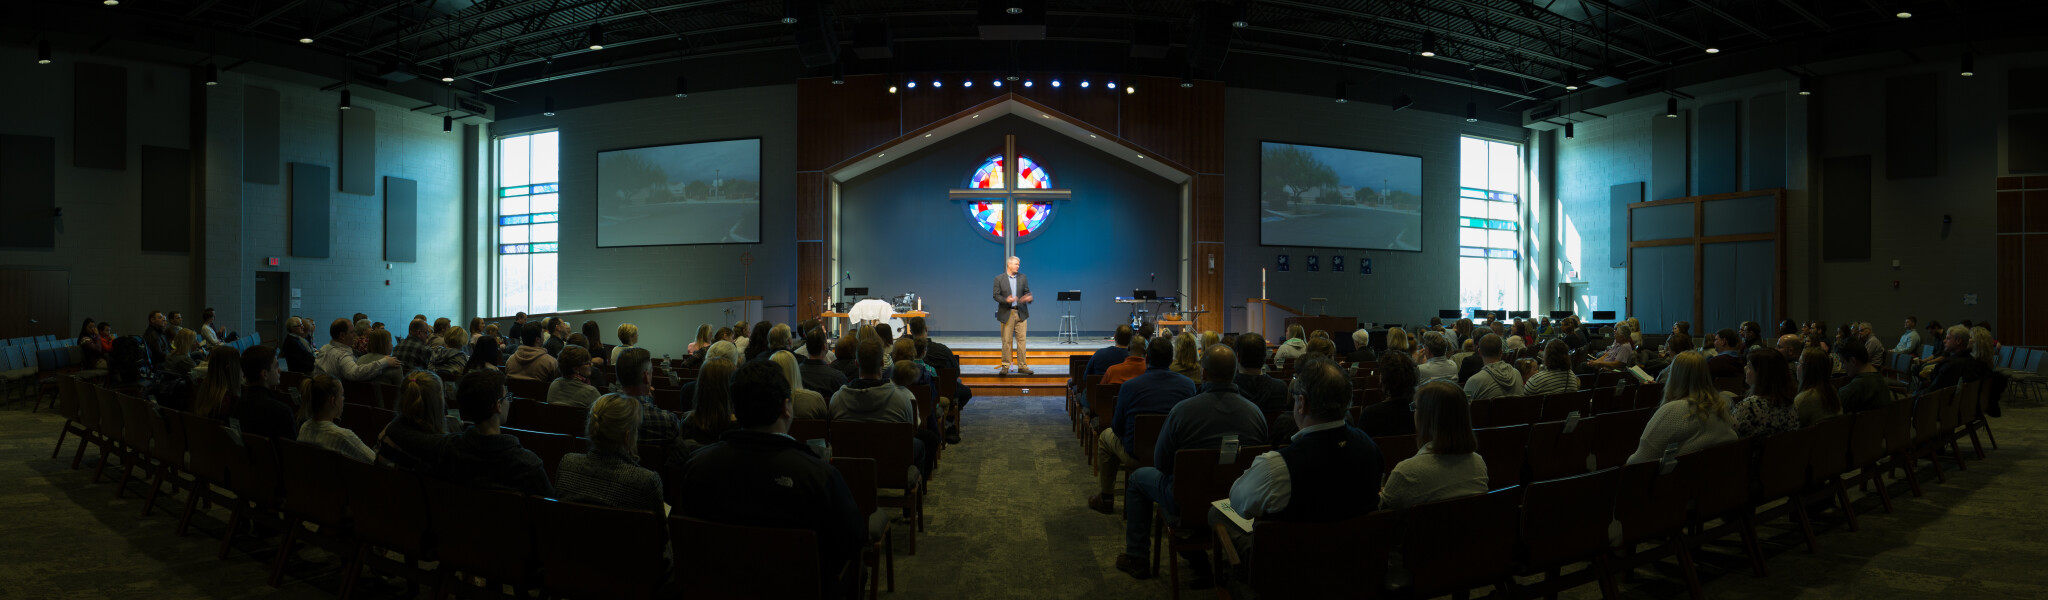 Fishers Contemporary @ 11:00am | Cornerstone Lutheran Church | Cornerstone Lutheran Church